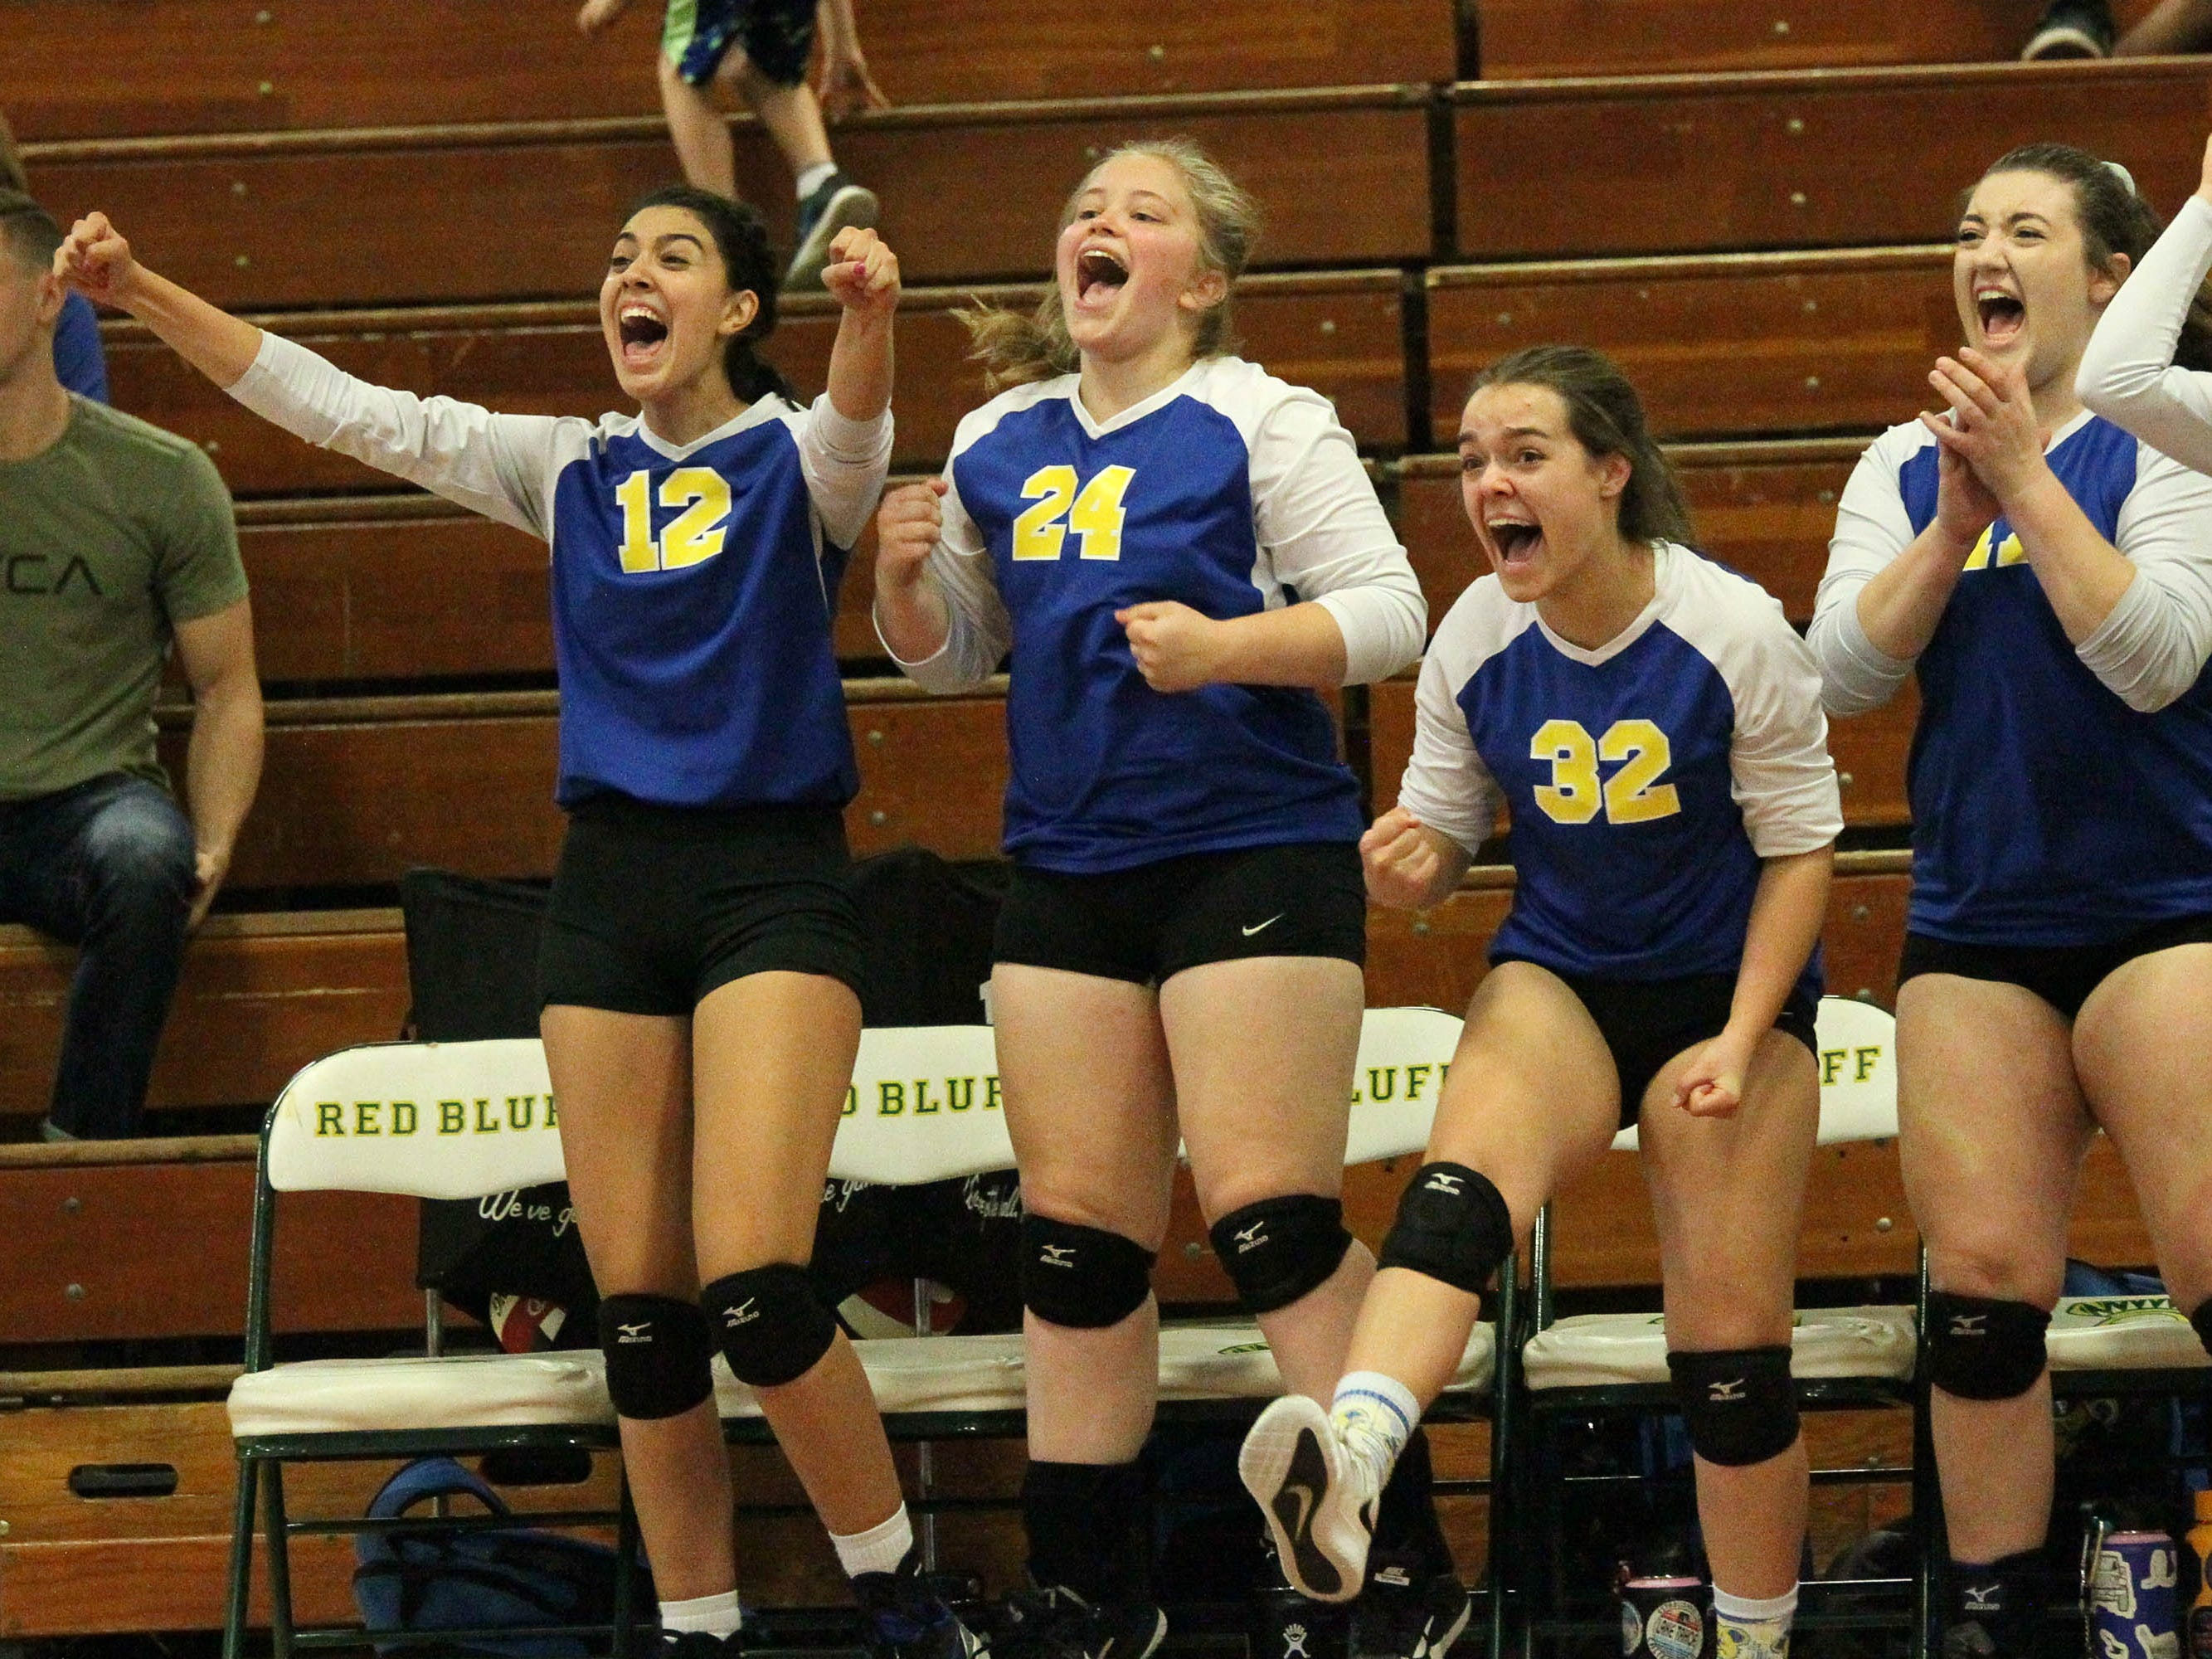 The Pierce bench cheers on their teammates in the Division IV Northern Section volleyball championship on Saturday, Nov. 3. Pierce won the match in three sets over U-Prep, 25-23, 25-21, 25-22.